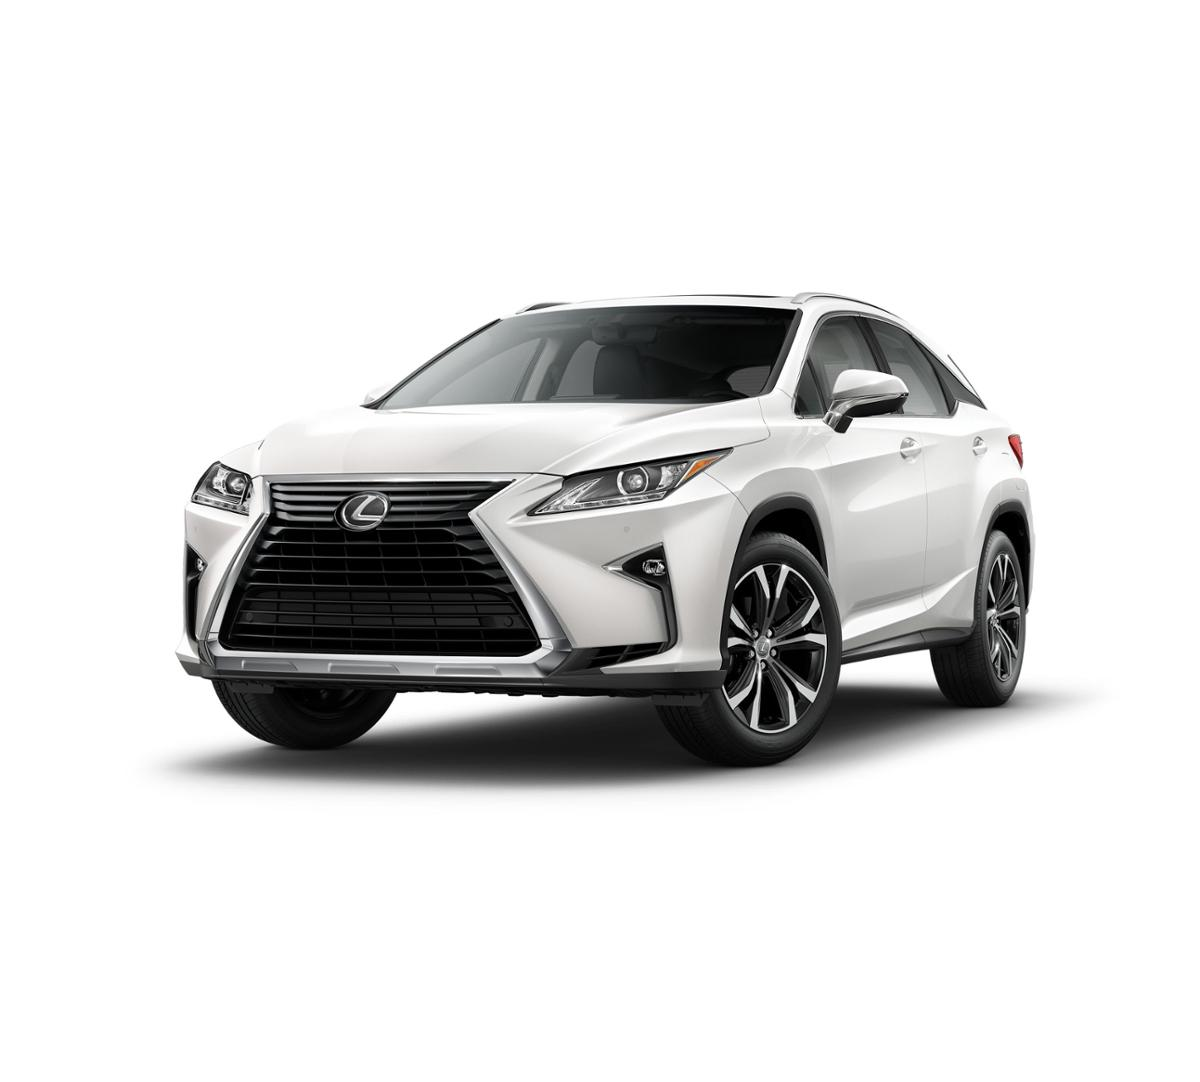 2019 Lexus RX 350 Vehicle Photo in Larchmont, NY 10538